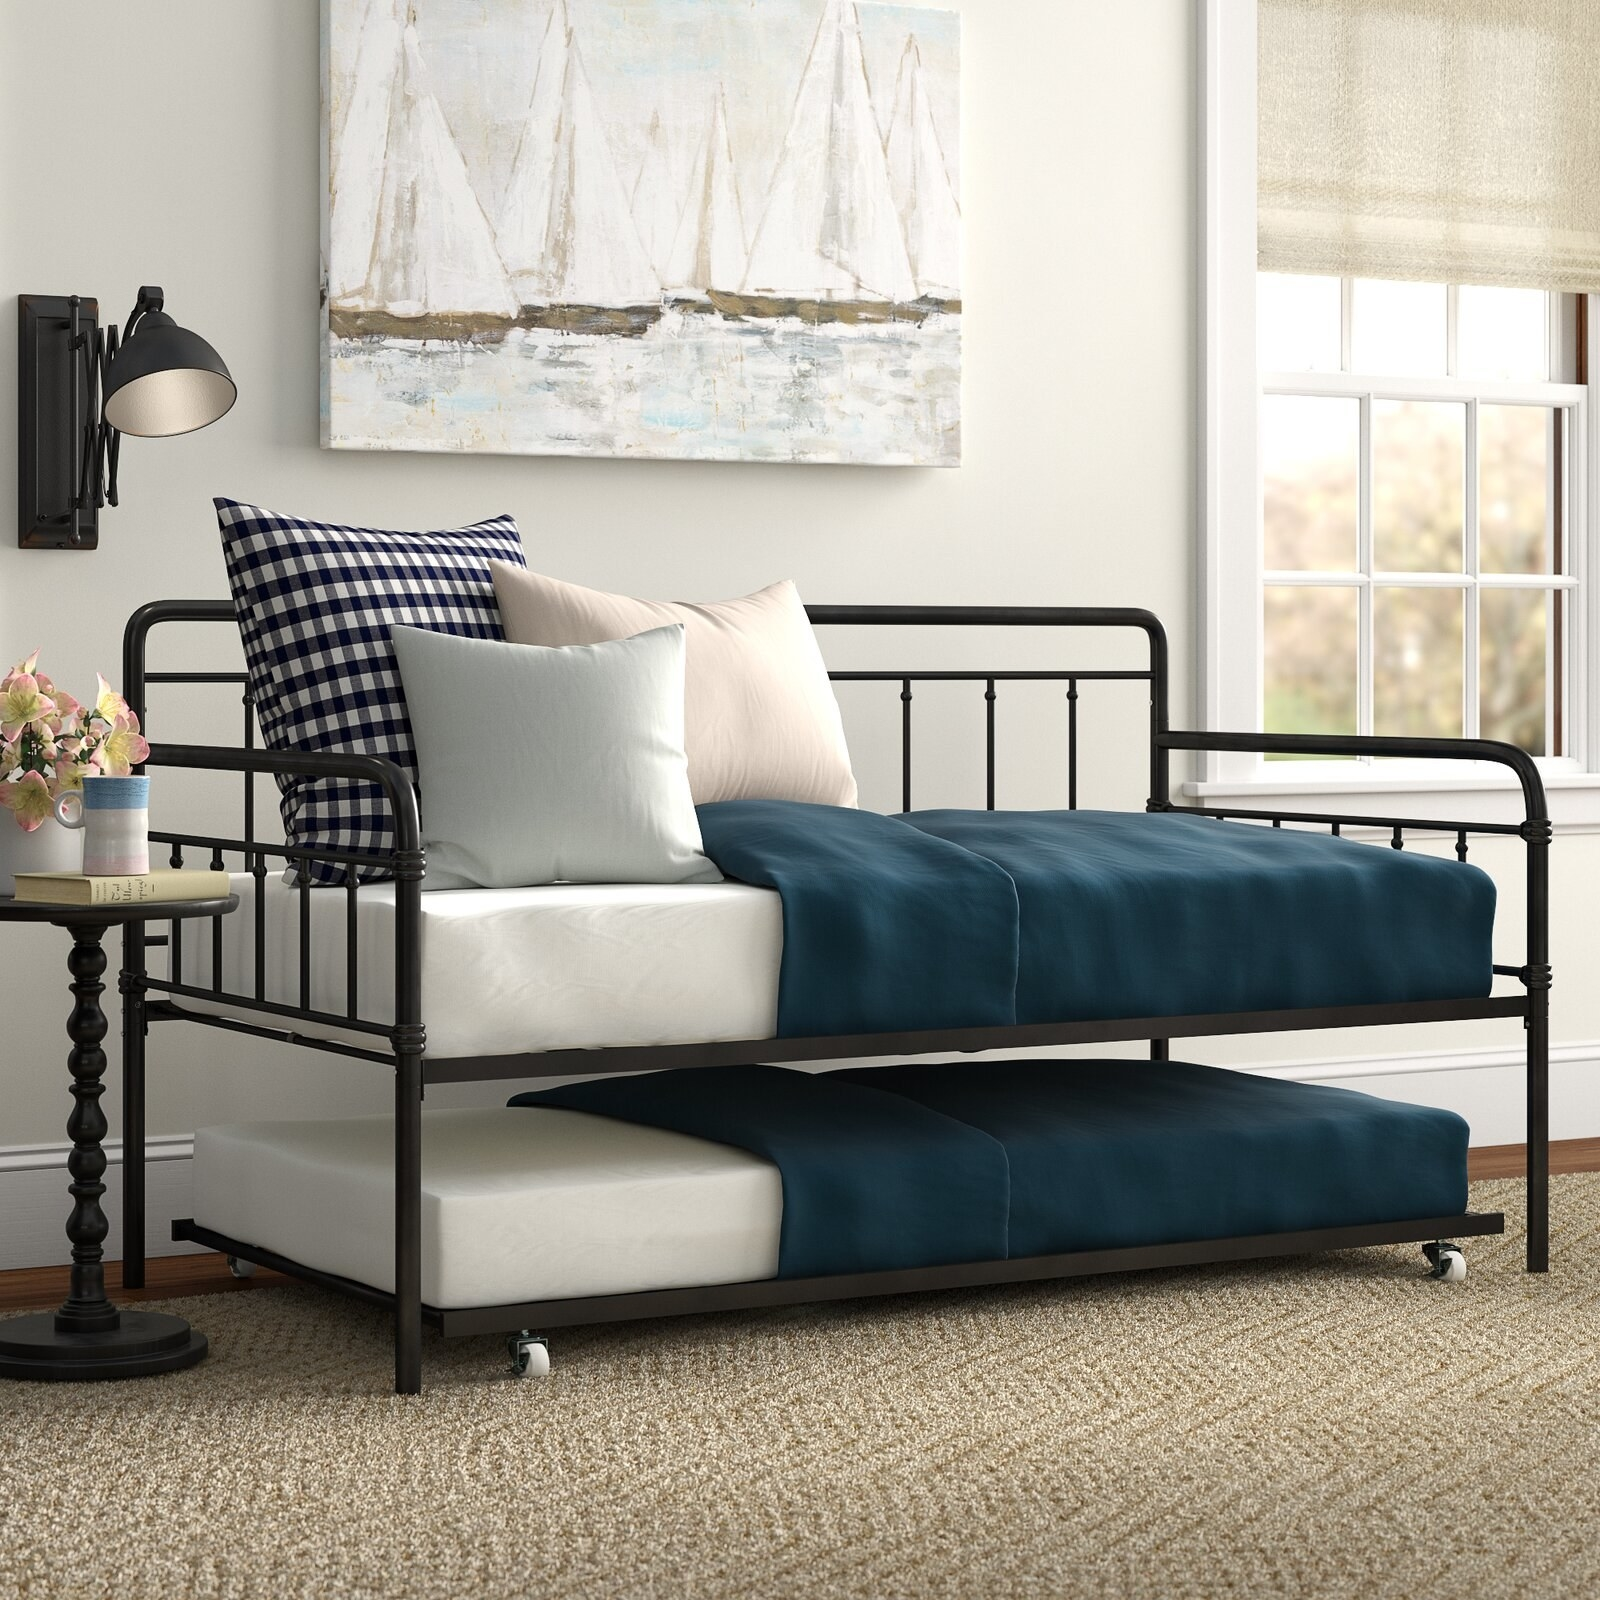 Wrought iron style daybed with trundle